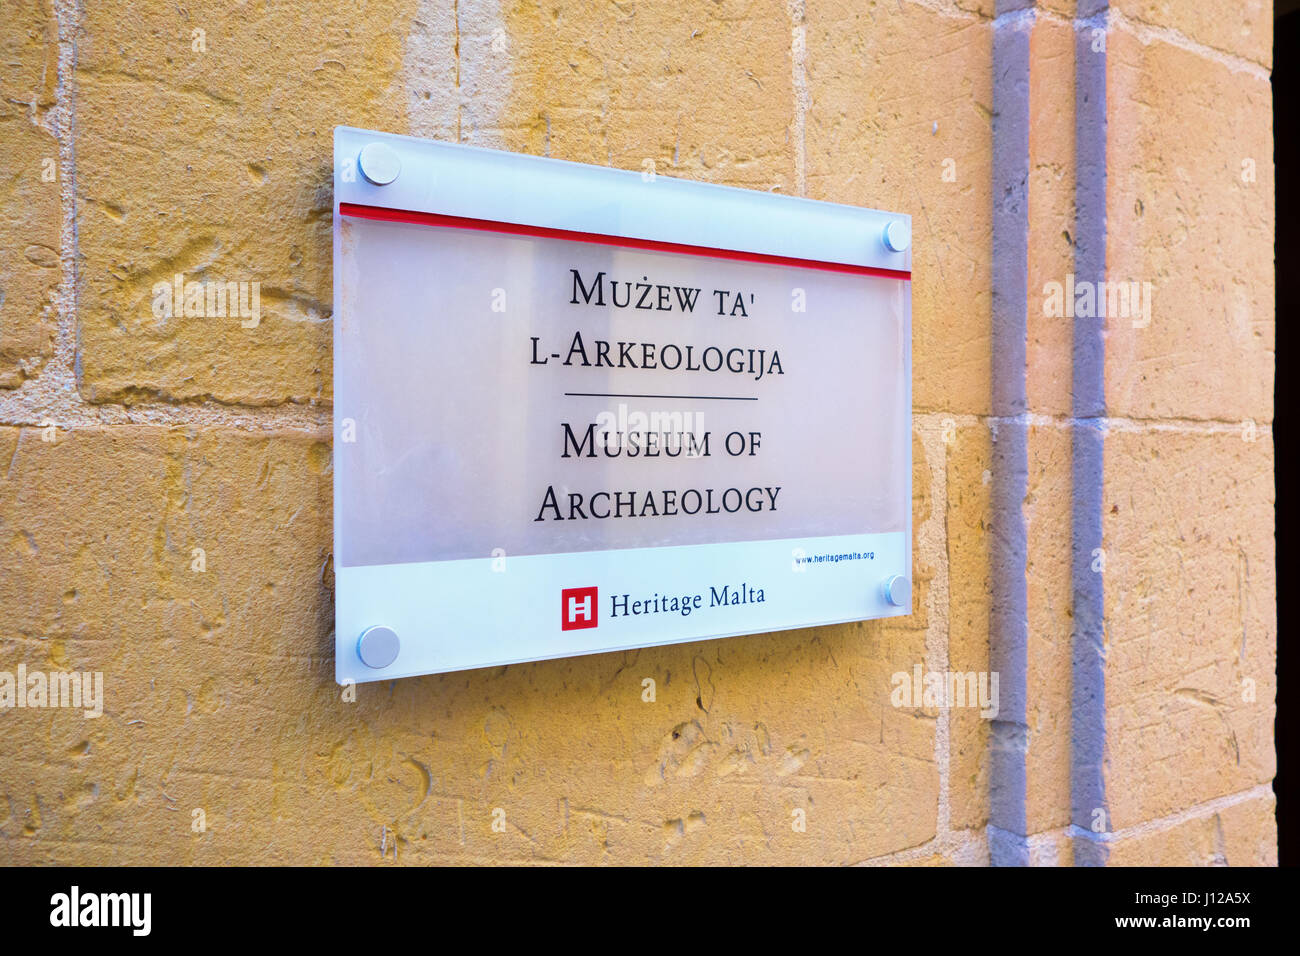 17ff46b41ab National Museum Of Archaeology Malta Stock Photos   National Museum ...